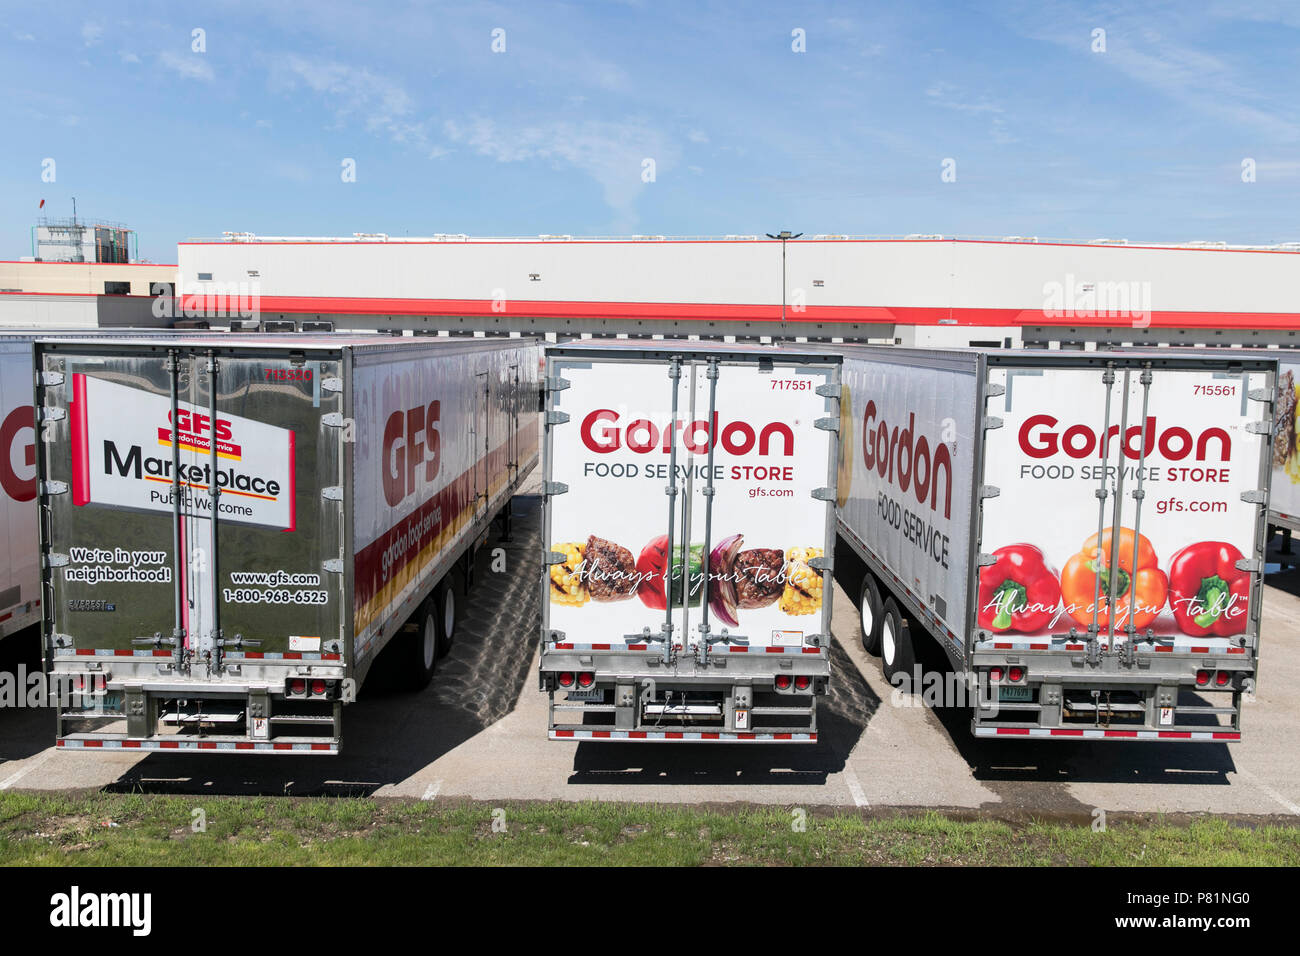 Semi trucks and trailers featuring Gordon Food Service logos outside